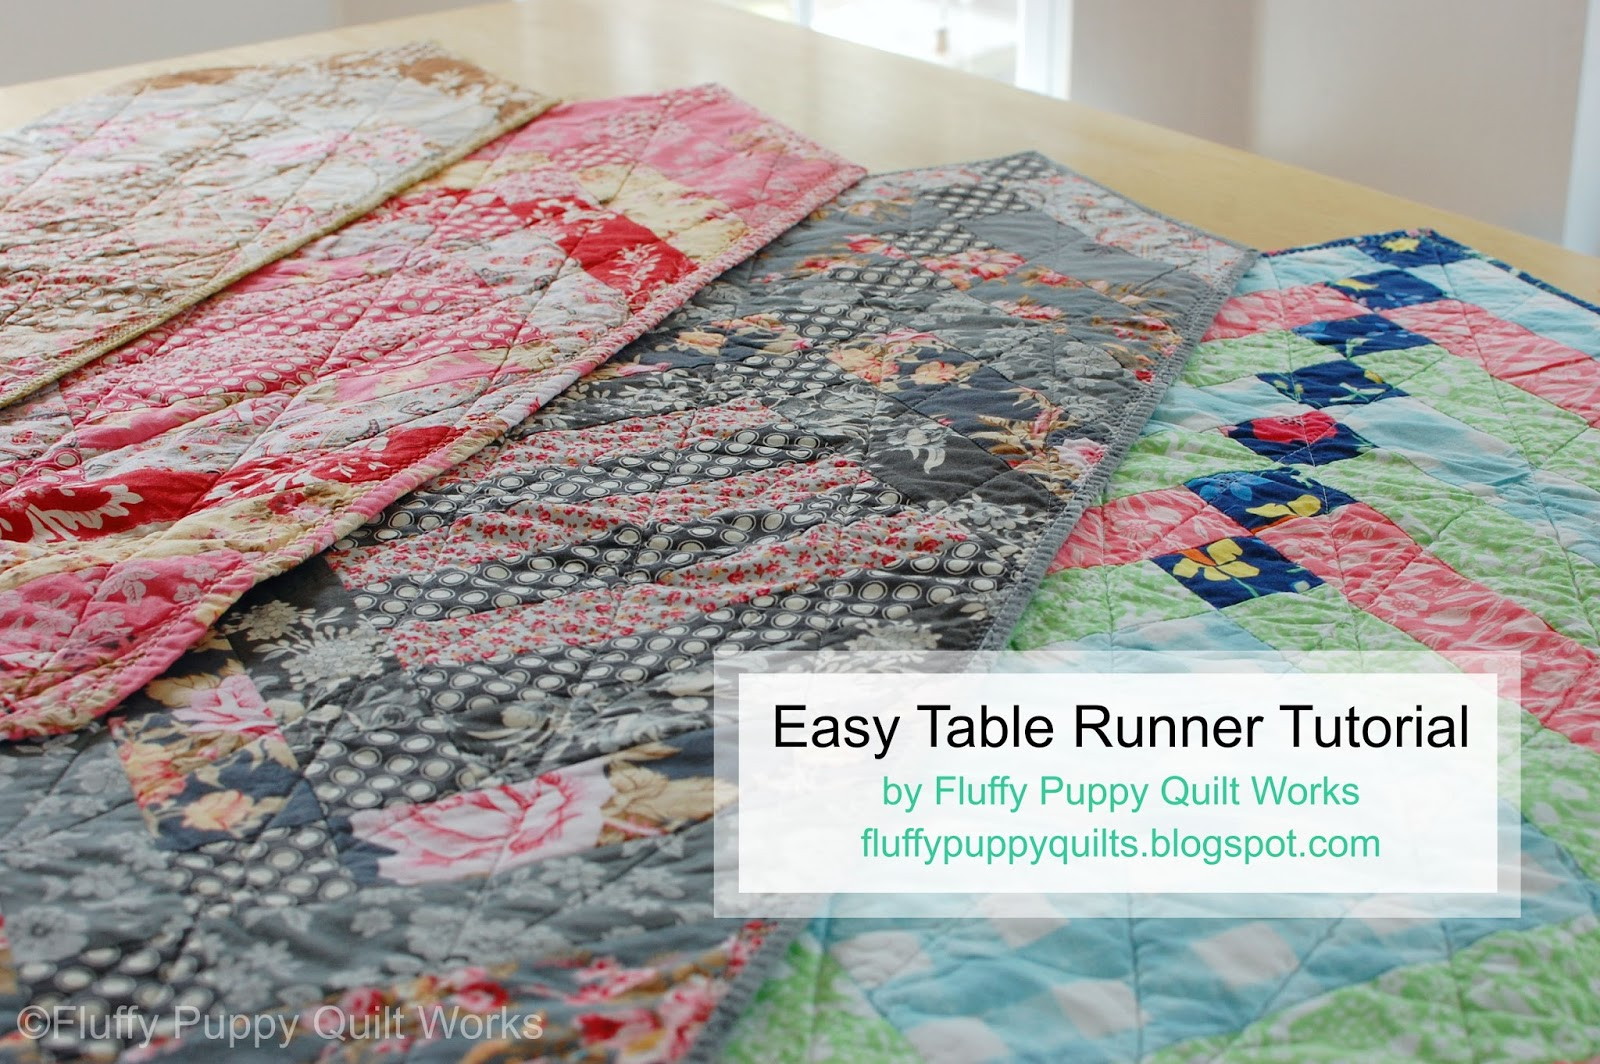 French Braid Quilt Pattern Using Jelly Roll : Fluffy Puppy Quilt Works: Easy French Braid Table Runner Tutorial: From a Jelly Roll!